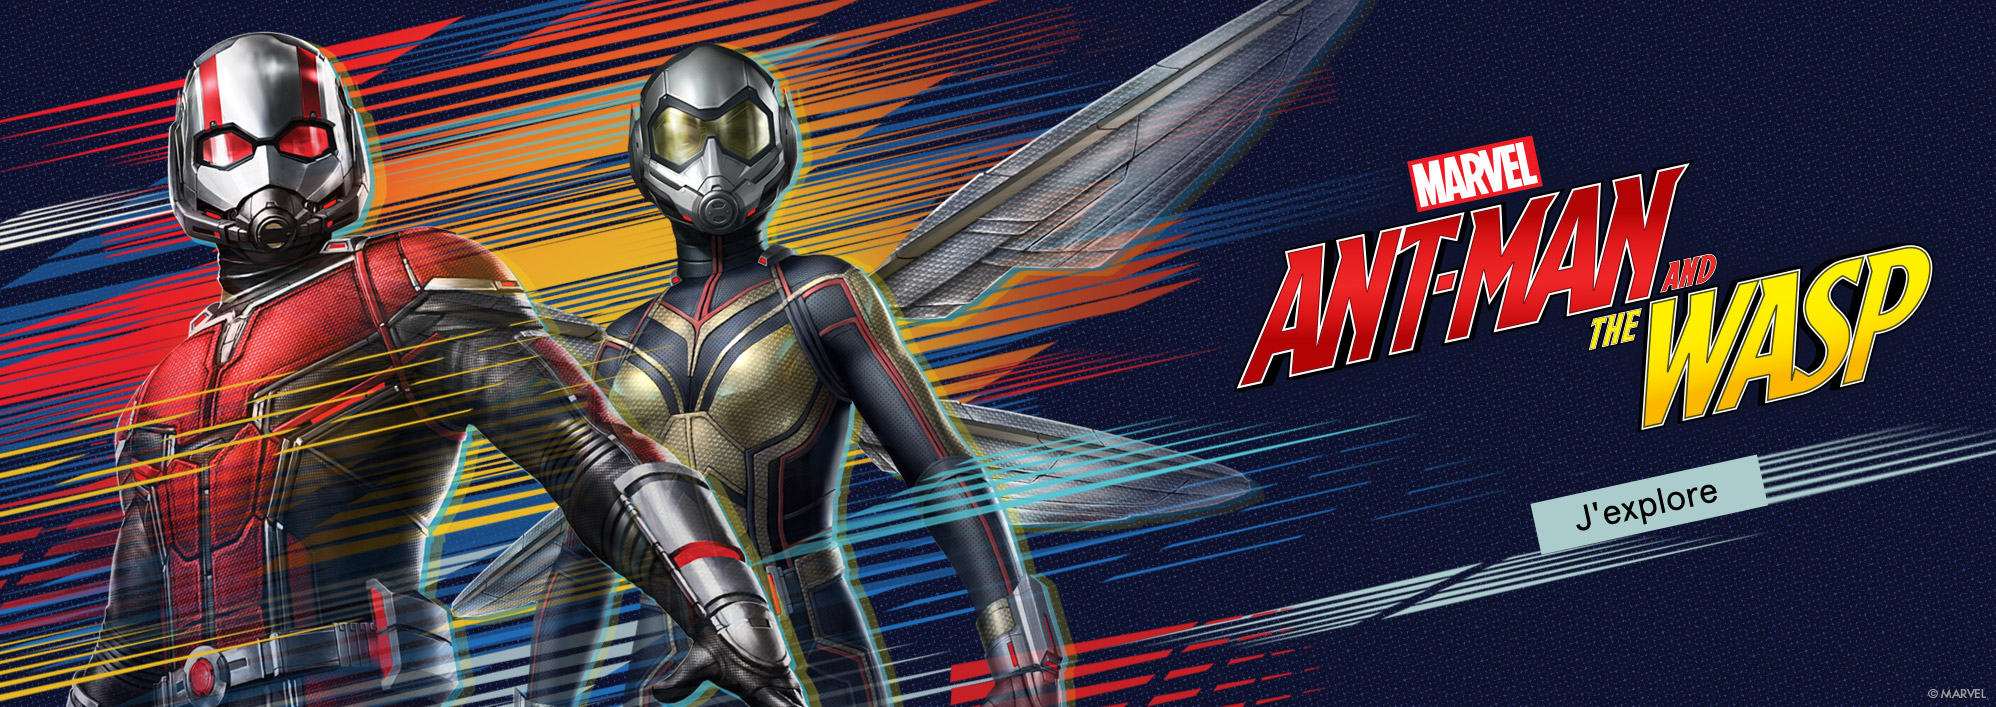 Marvel. Ant-Man and the Wasp. J'explore.